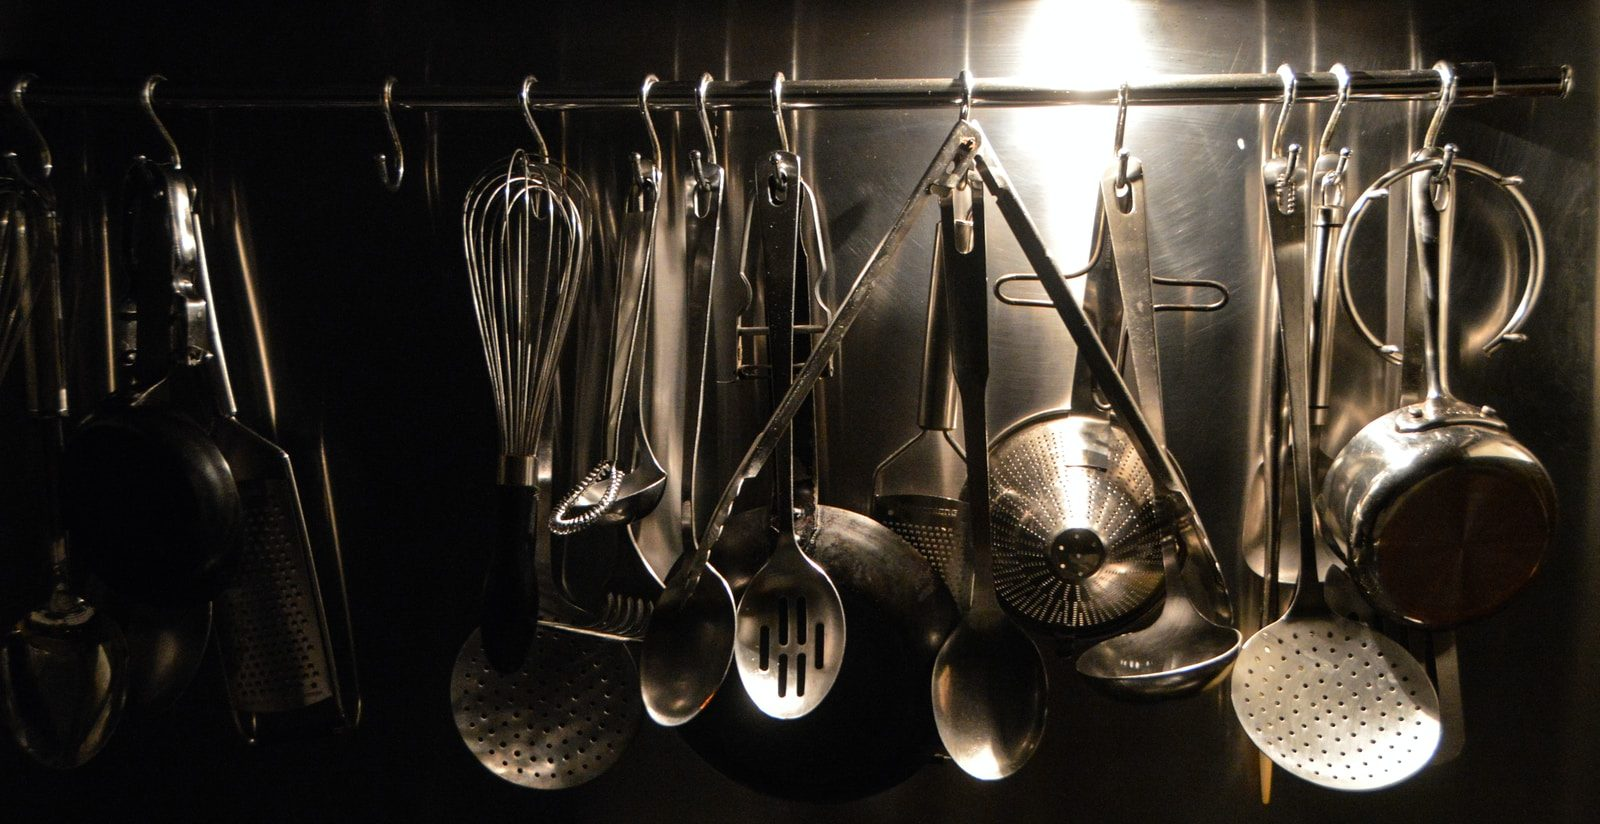 stainless steel spoons and spoons